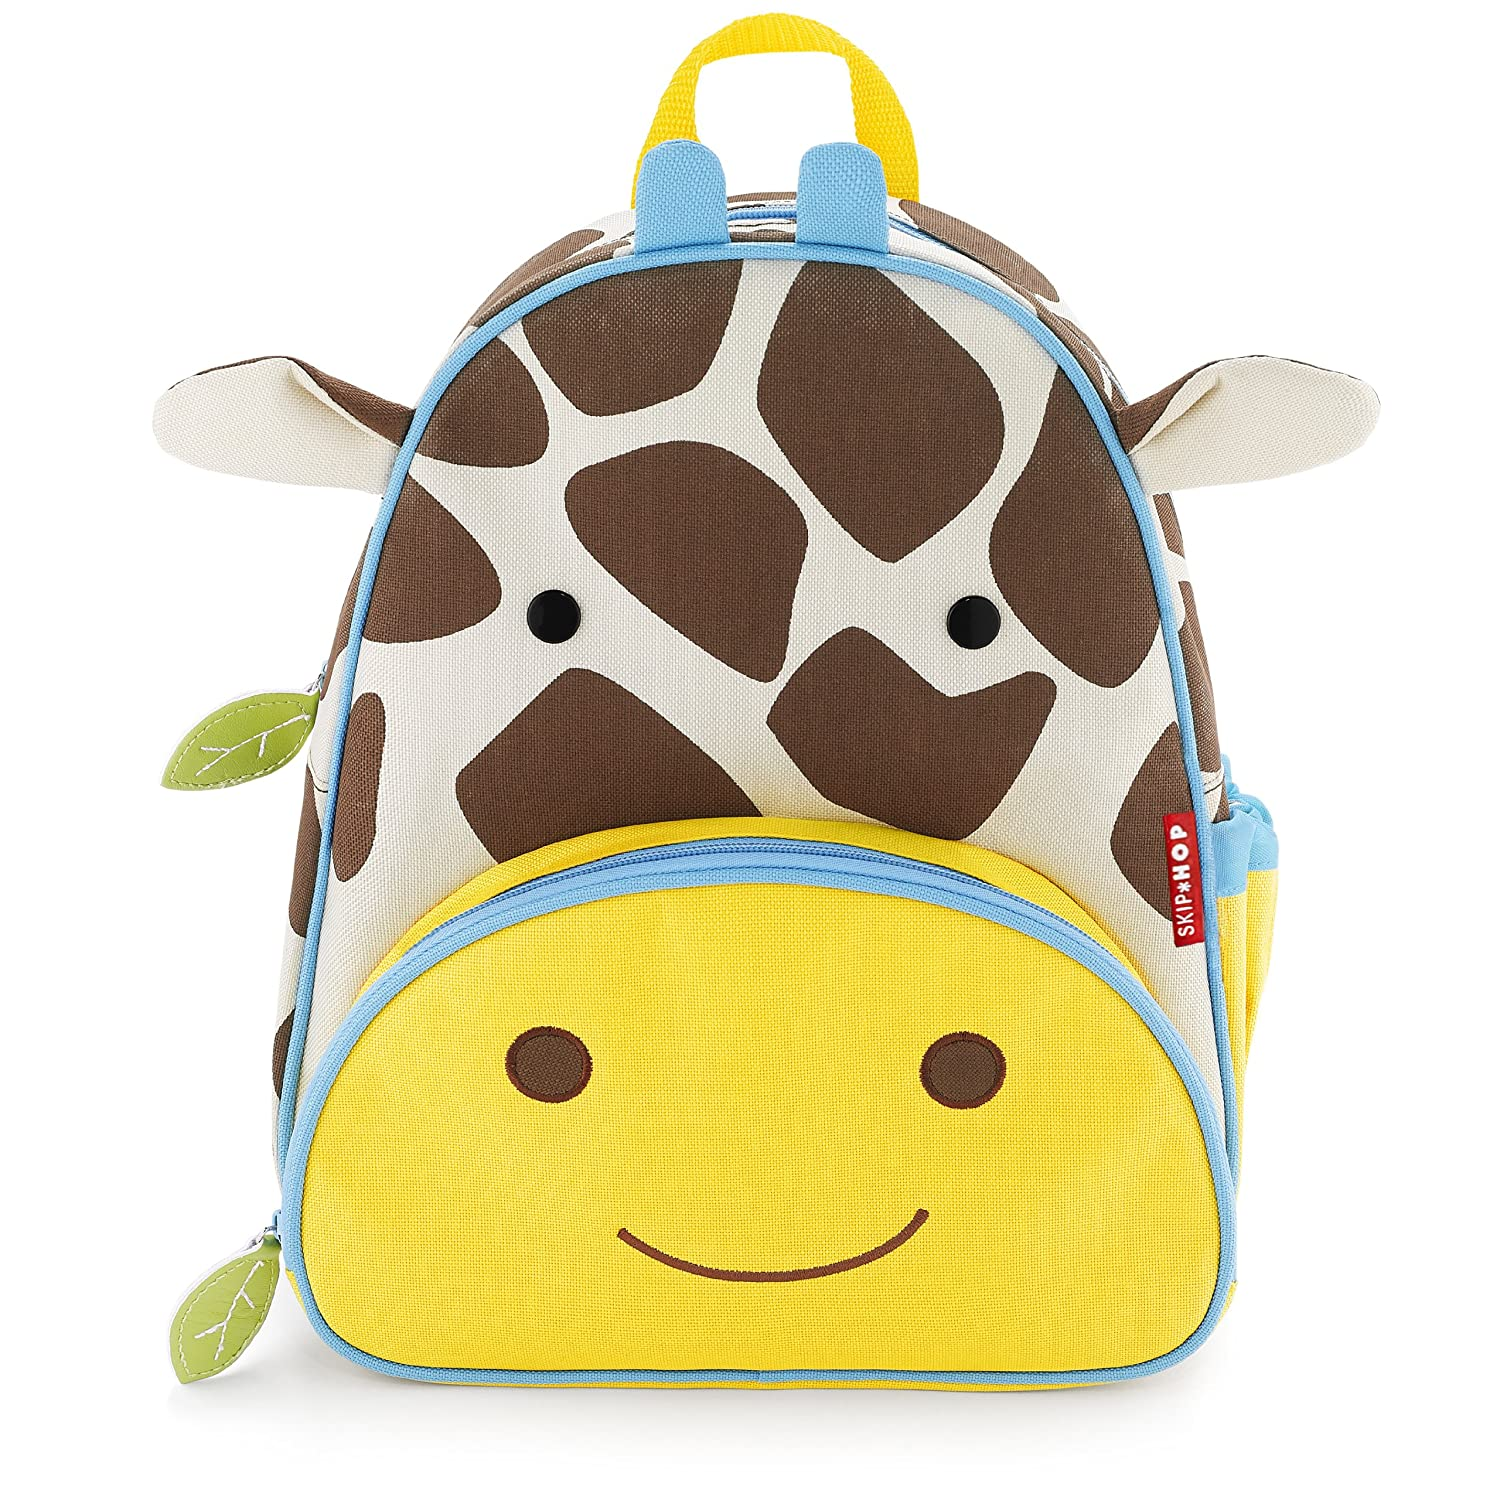 Skip Hop Zoo Pack Giraffe Little Kids Backpack